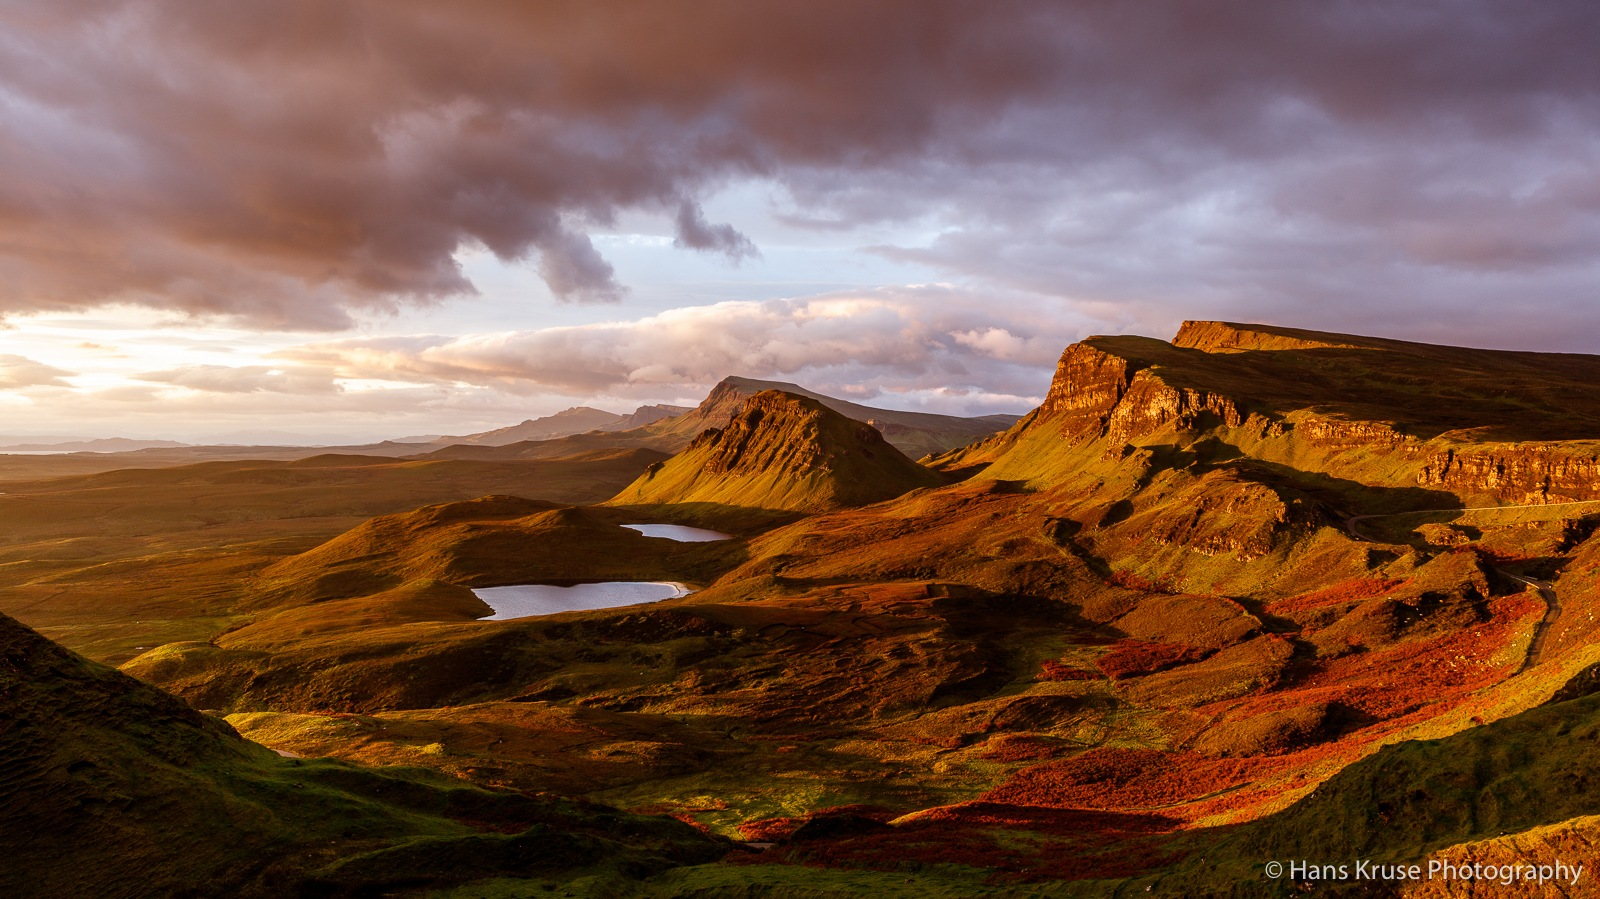 The Quiraing in morning light  by Hans Kruse